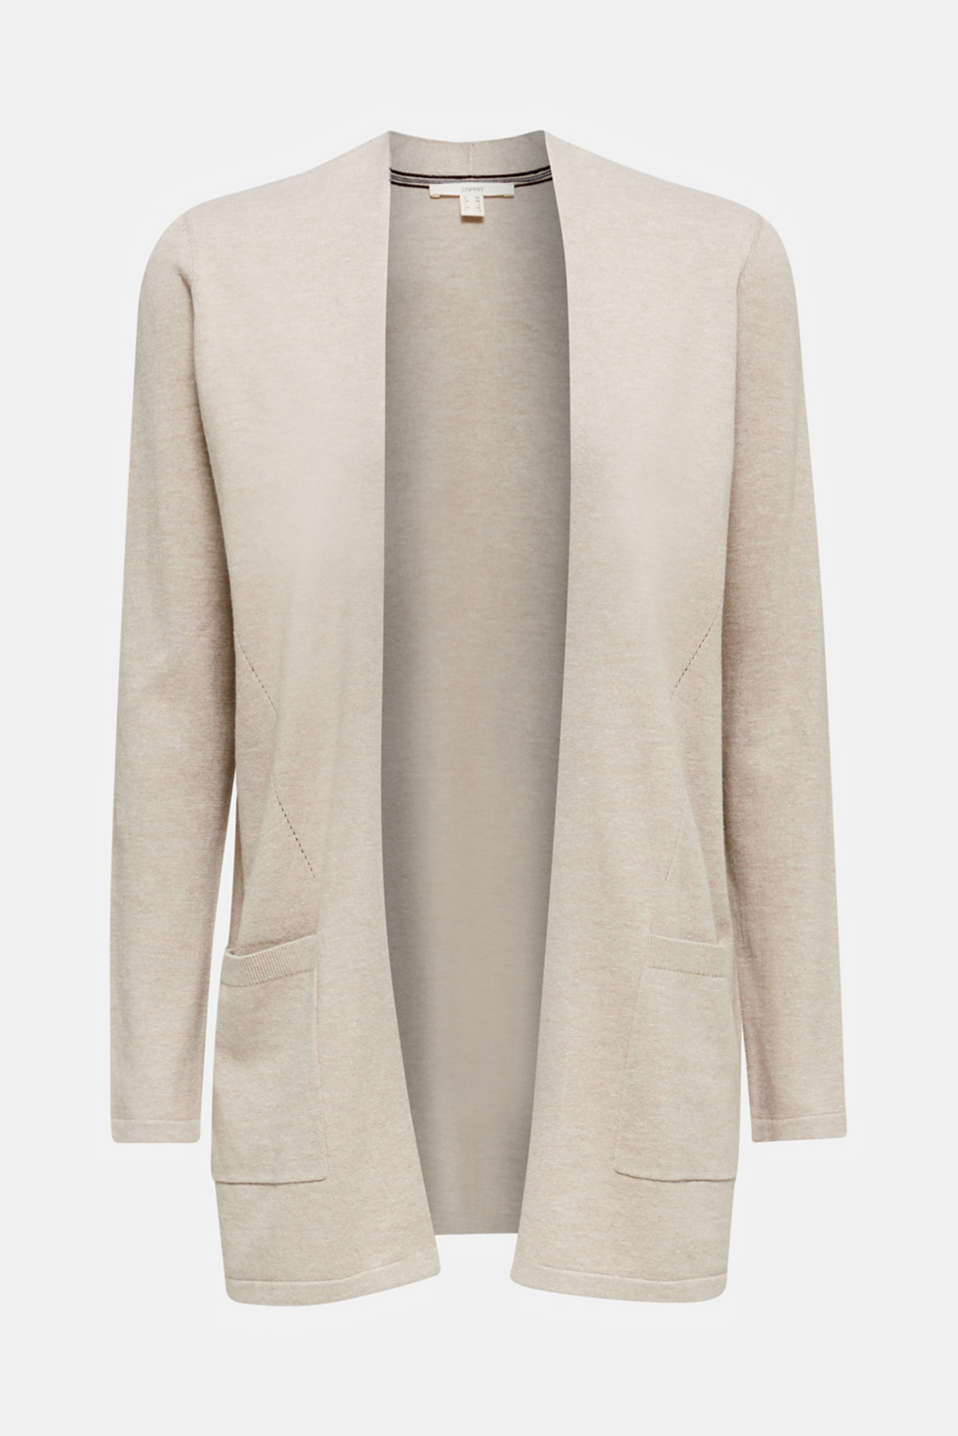 With linen: open cardigan with open-work pattern details, BEIGE 5, detail image number 7